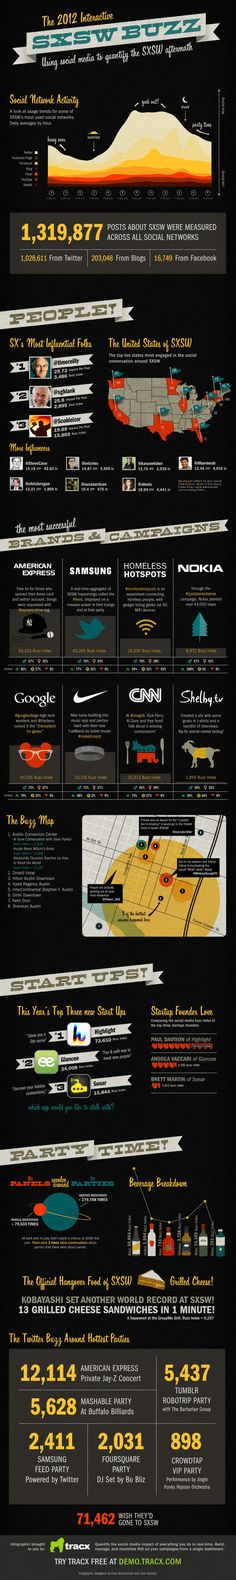 SXSWi 2012's Most Buzzed About People Events and Startups #infographic #tech #pinterest